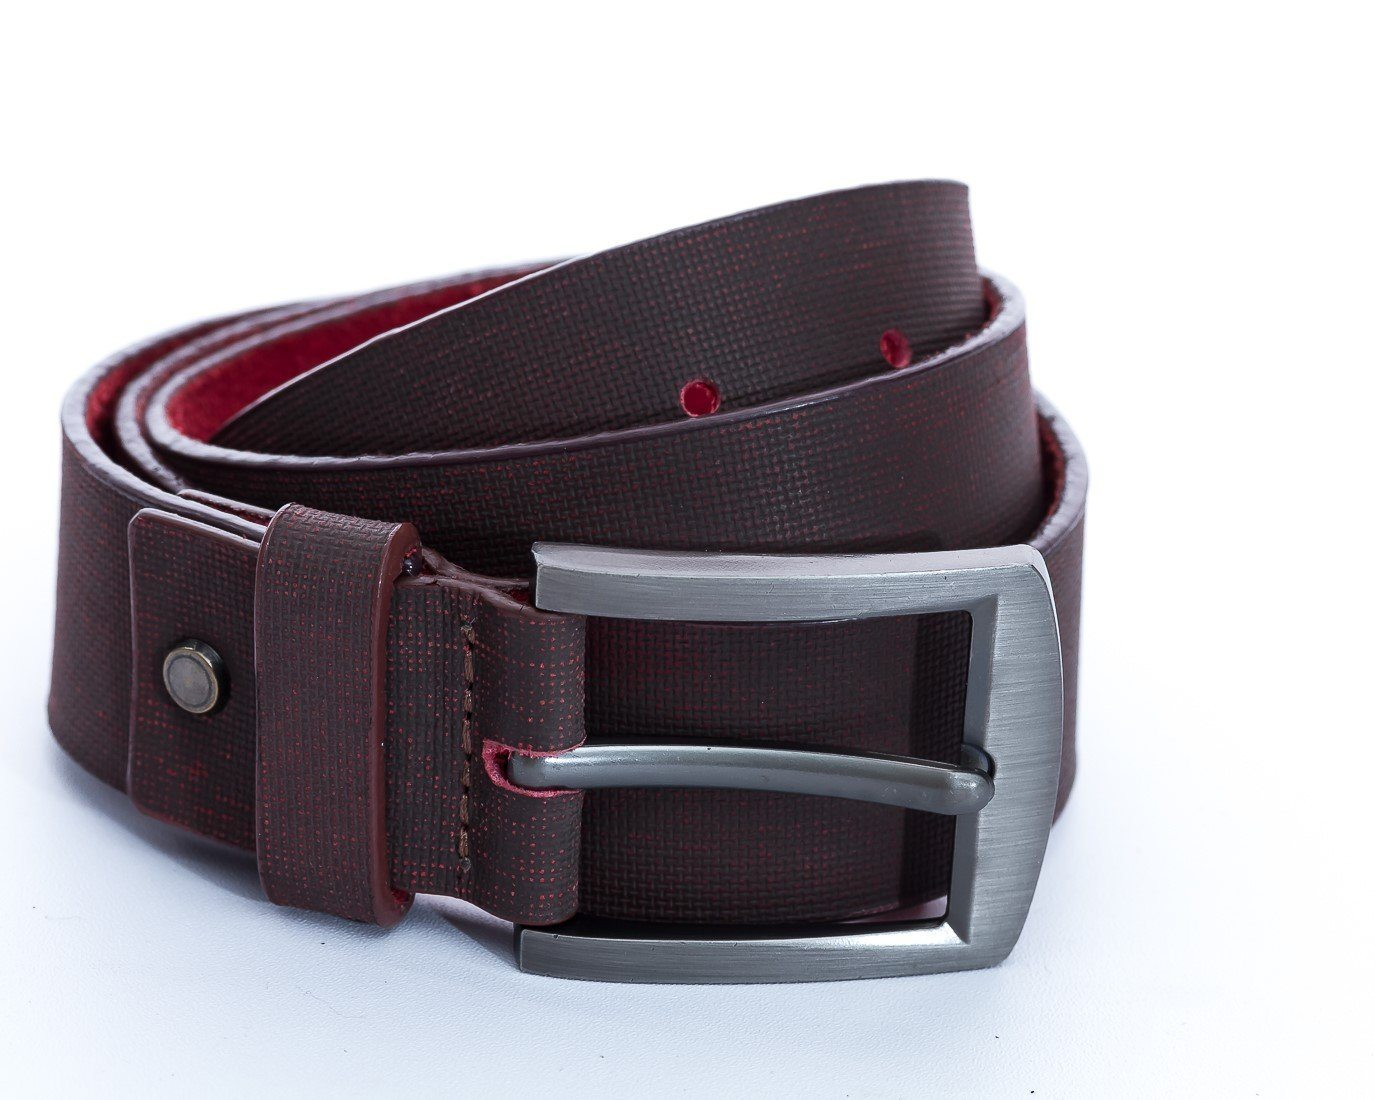 Randall Mens Belt - The Gaspy Collection